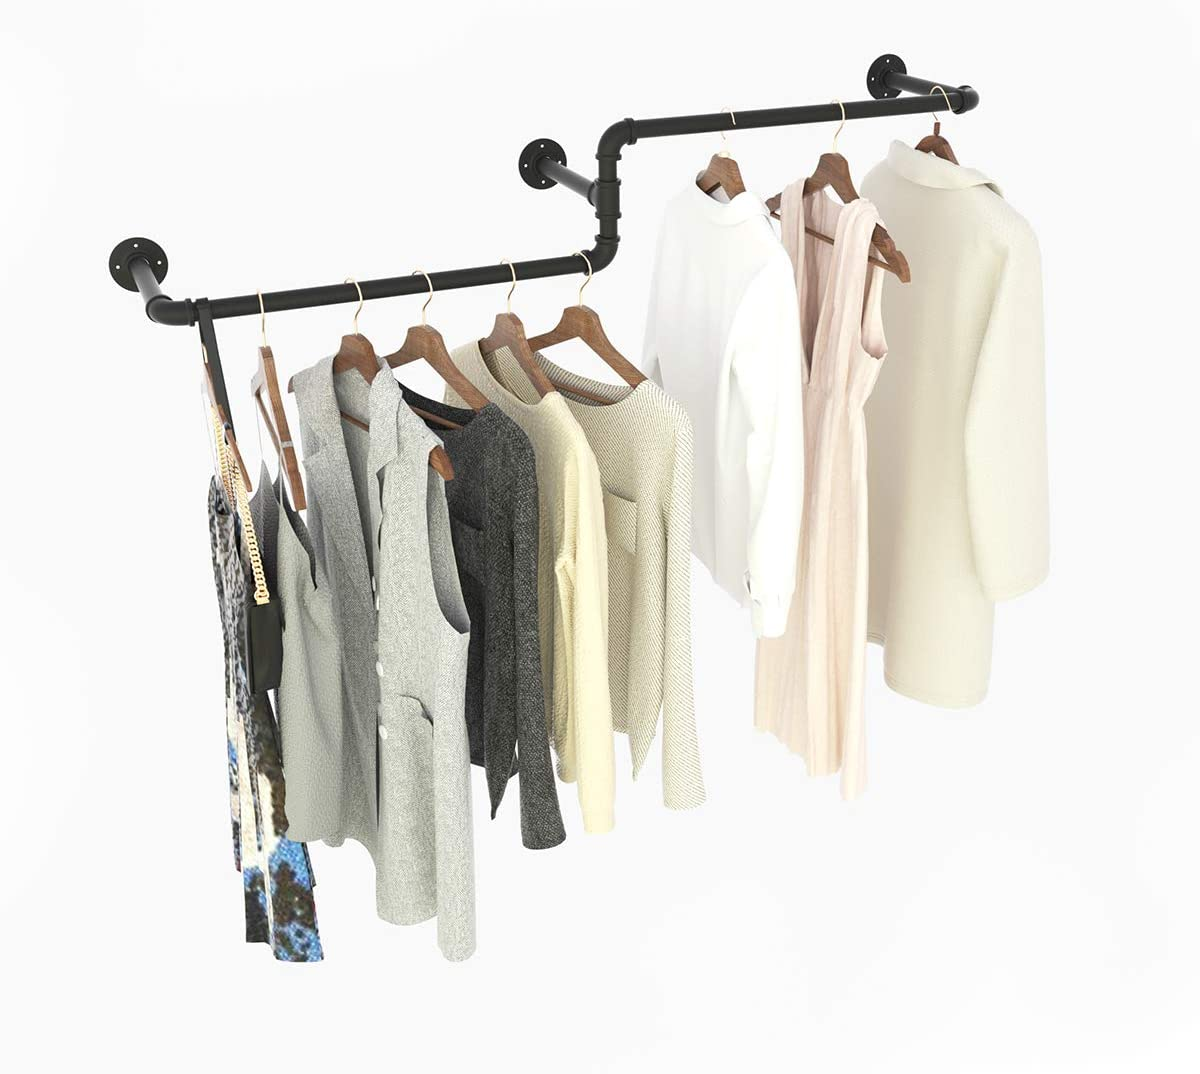 """MDEPYCO Industrial Pipe Wall Mounted Towel Clothing Hanging Shelves System,Vintage Laundry Room Rod,Metal Garment Rack for Clothes Retail Display (Black, 47"""" L)"""